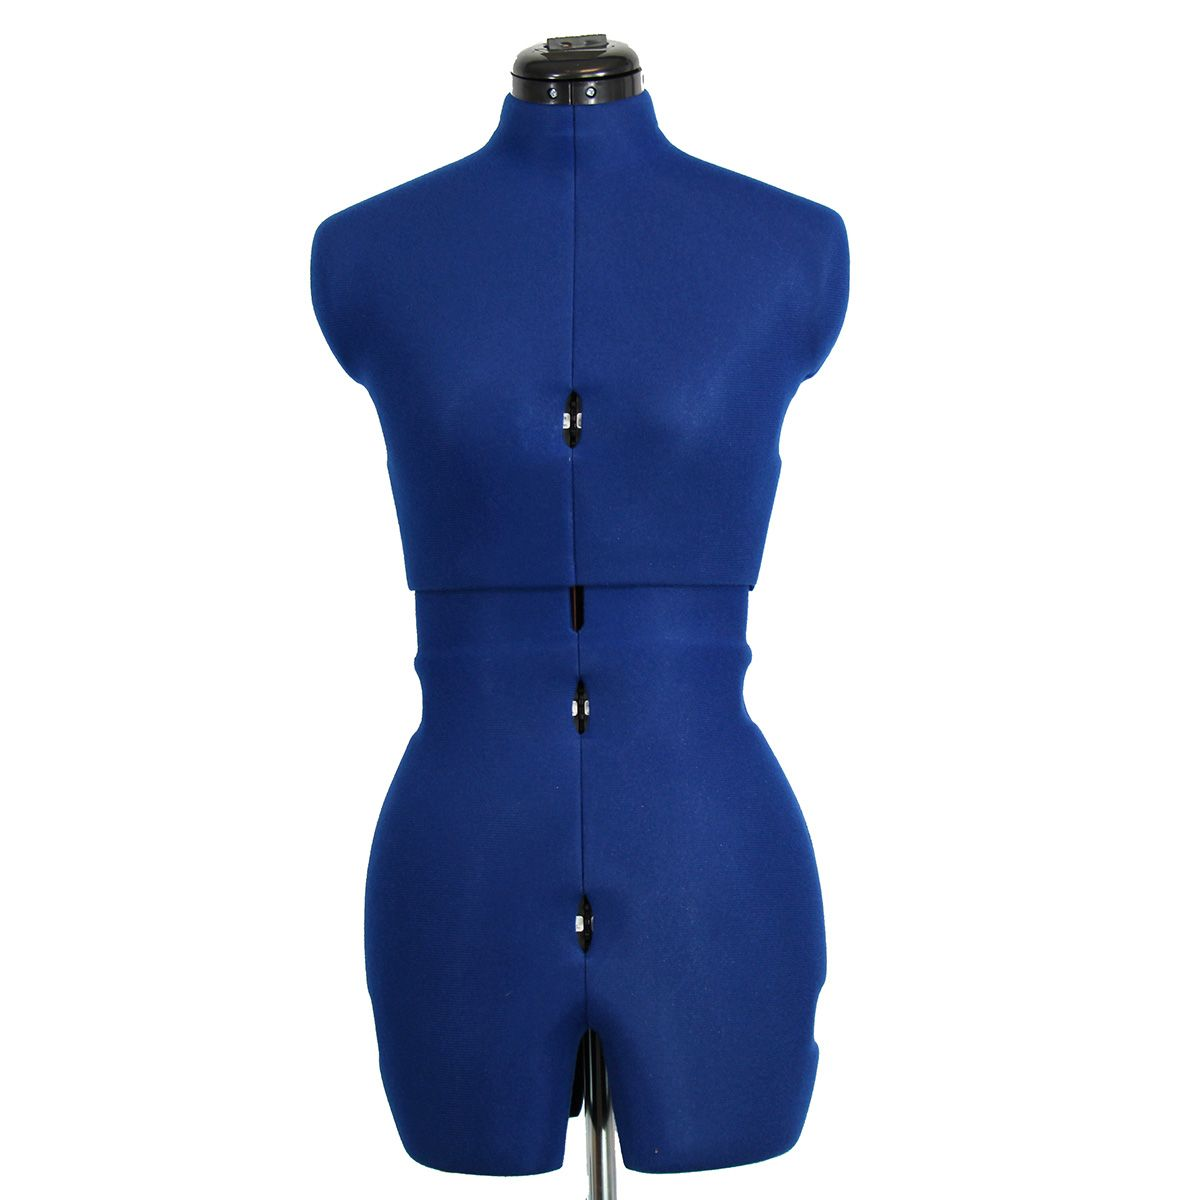 Mannequin couture Pantaform Deluxe taille 36 / 44